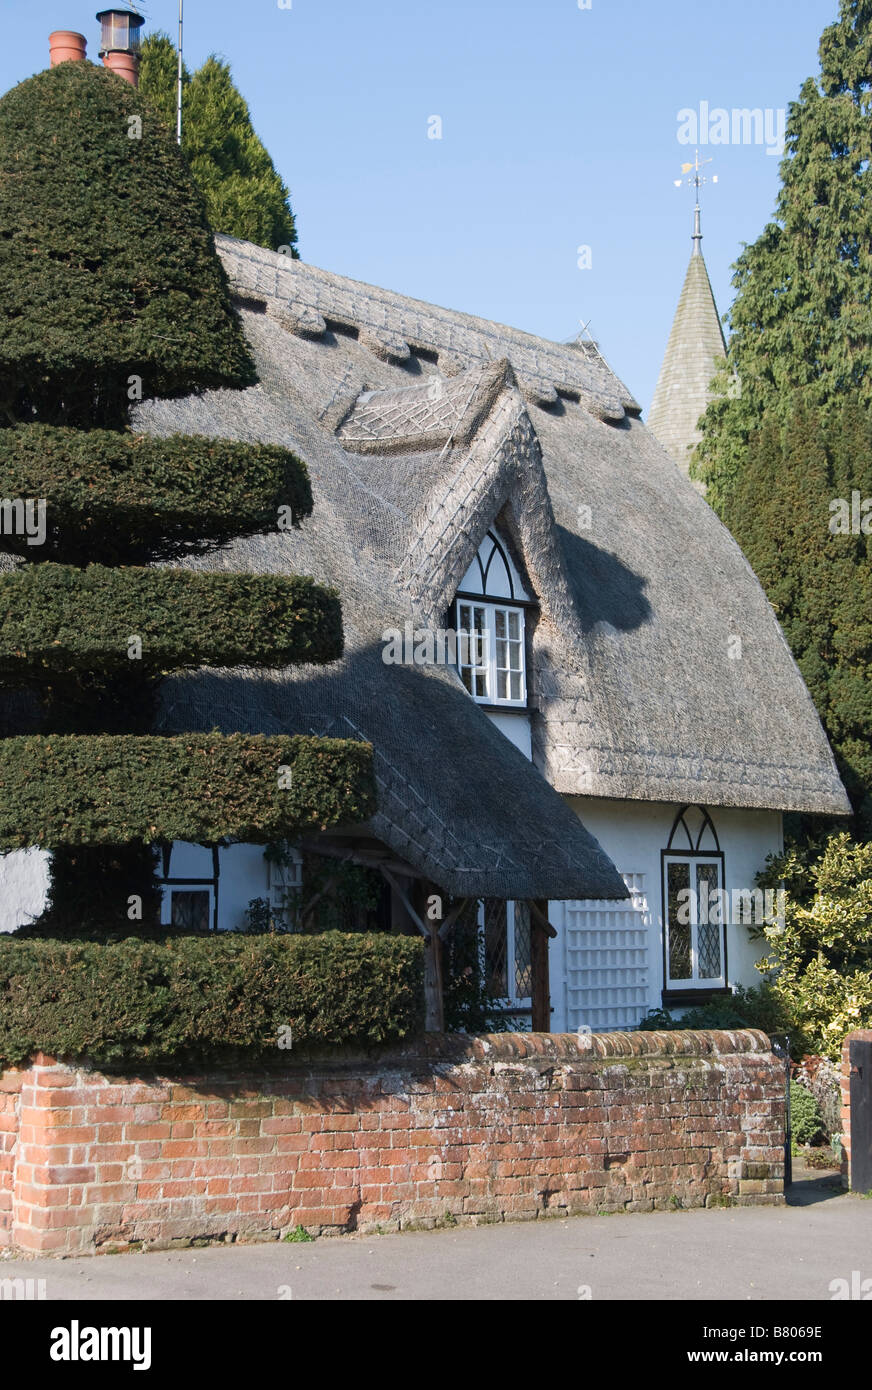 Yew Tree Cottage, Birdbrook, Essex, UK. A neatly clipped yew gives this thatched cottage its name - Stock Image